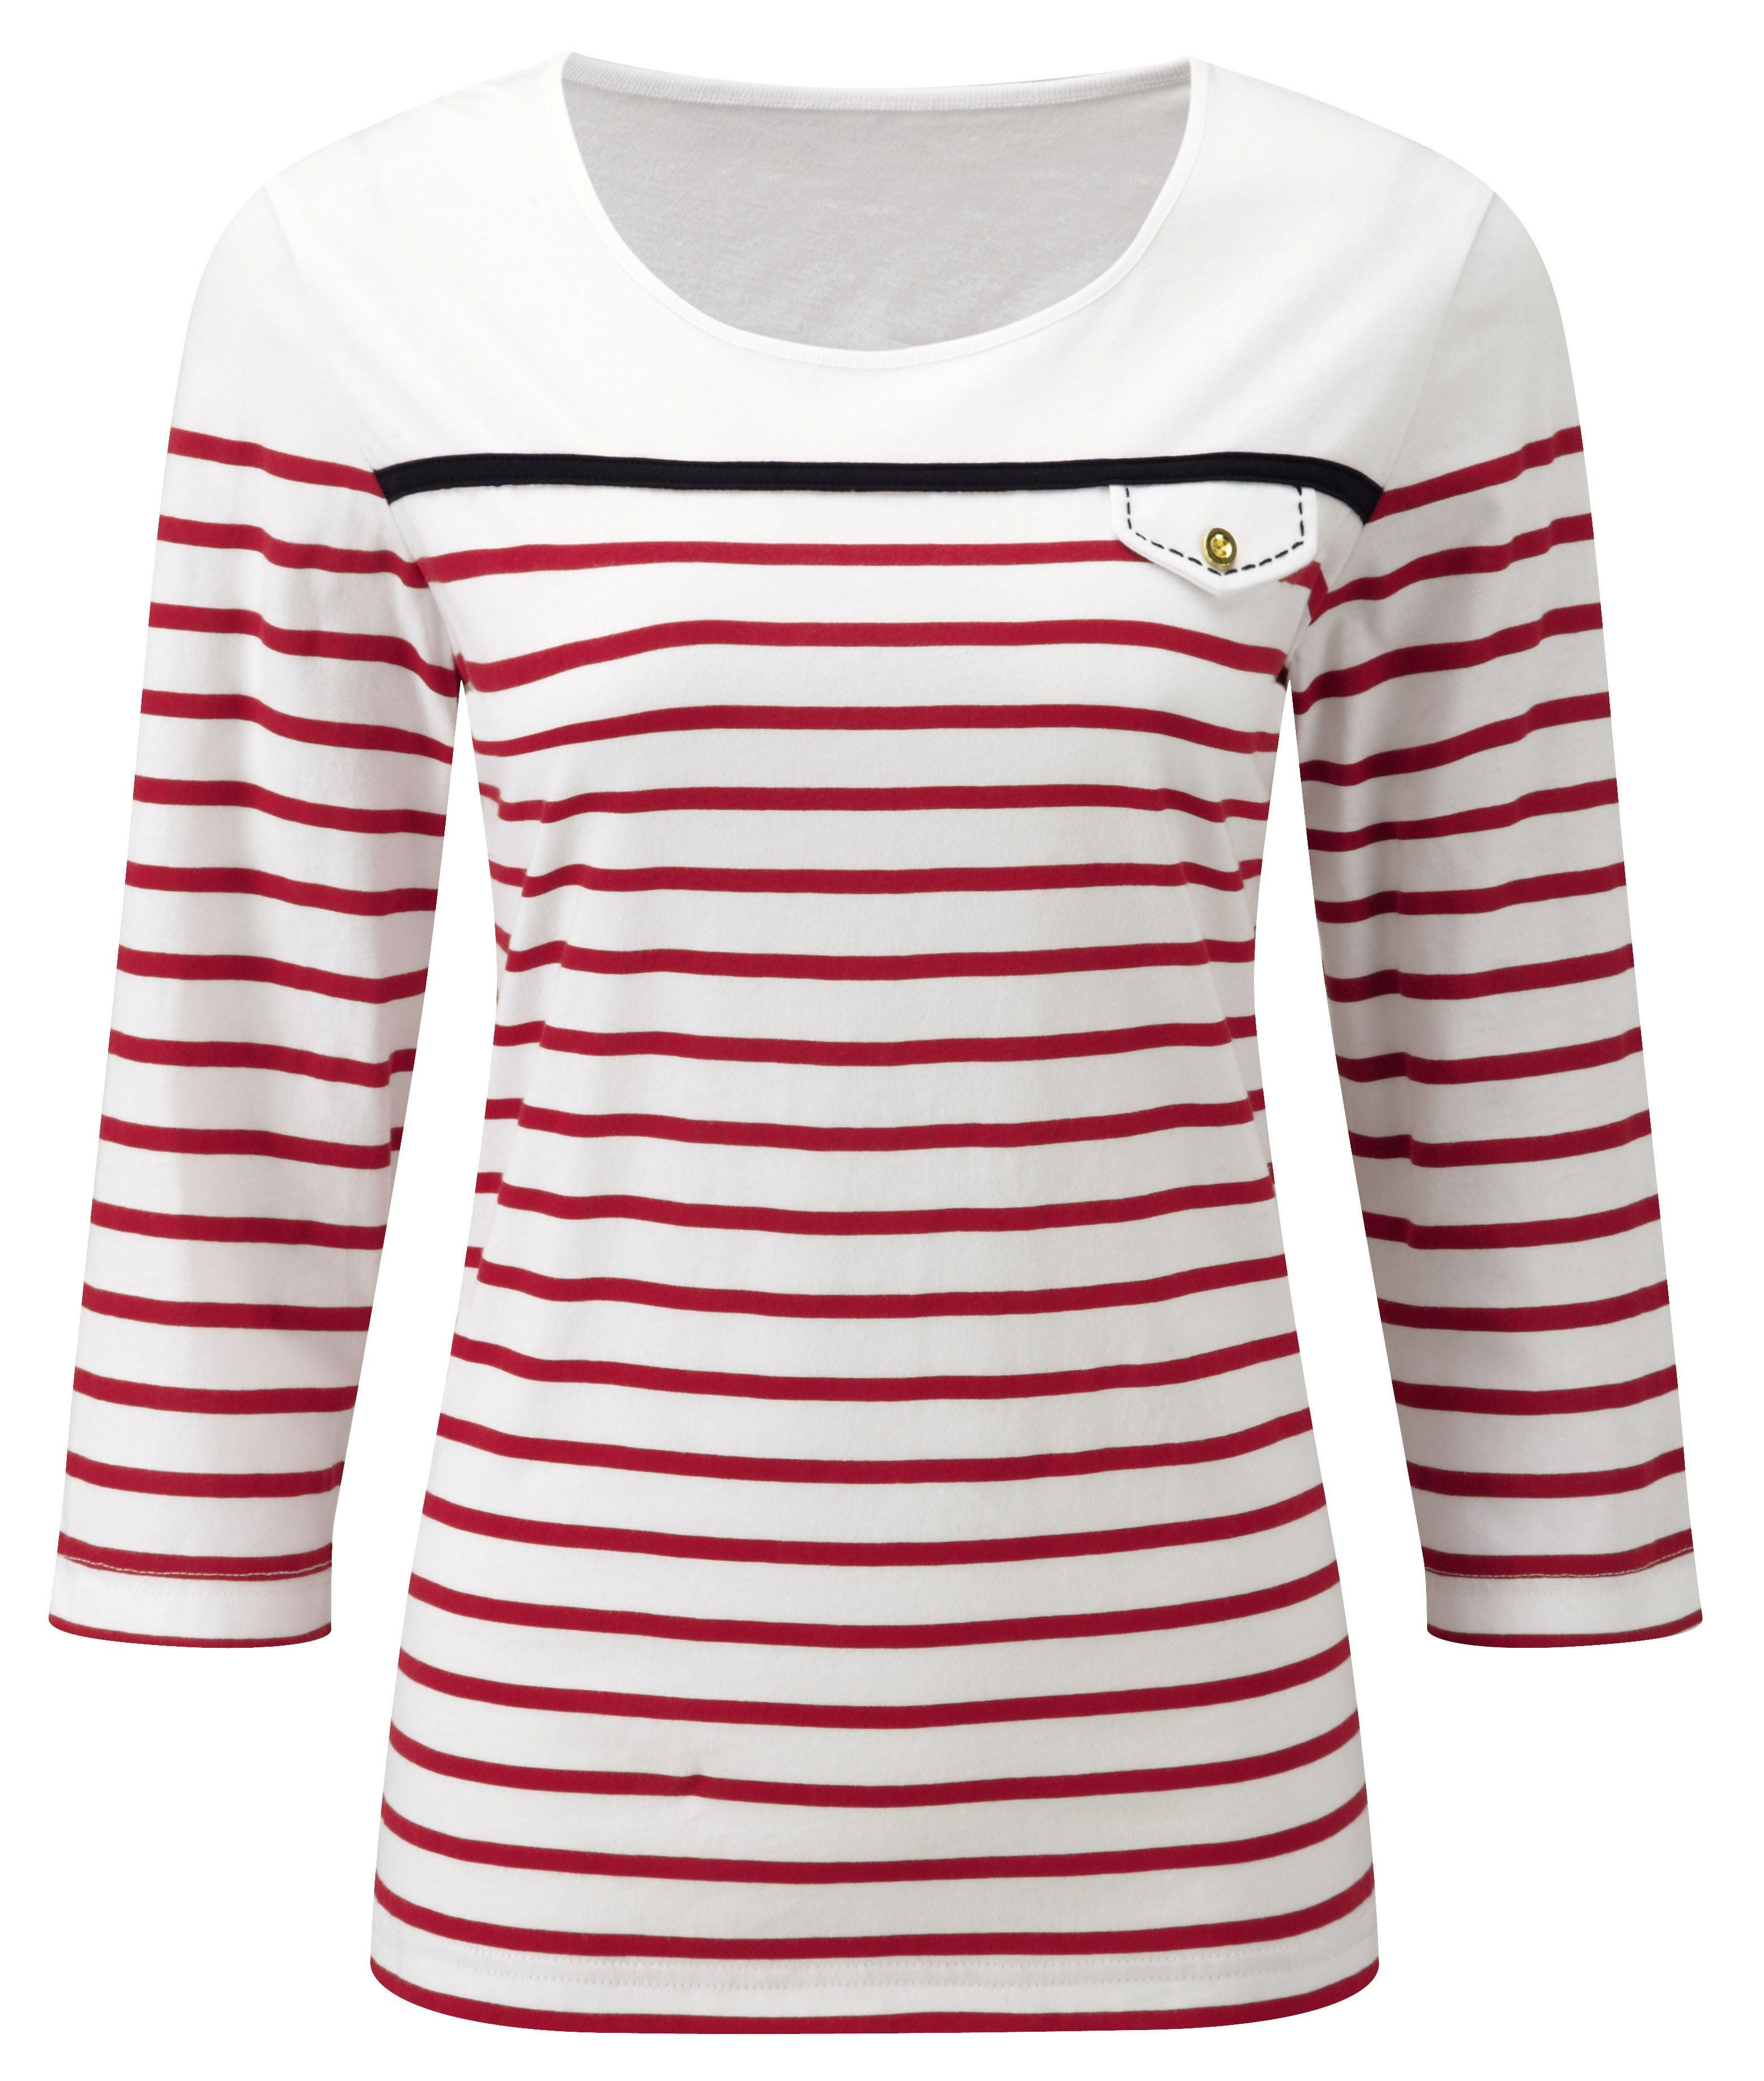 Striped Sailor Neck Top In Red Stripe Reference Code W334 Www Damart Co Uk Tops Mens Tops Striped